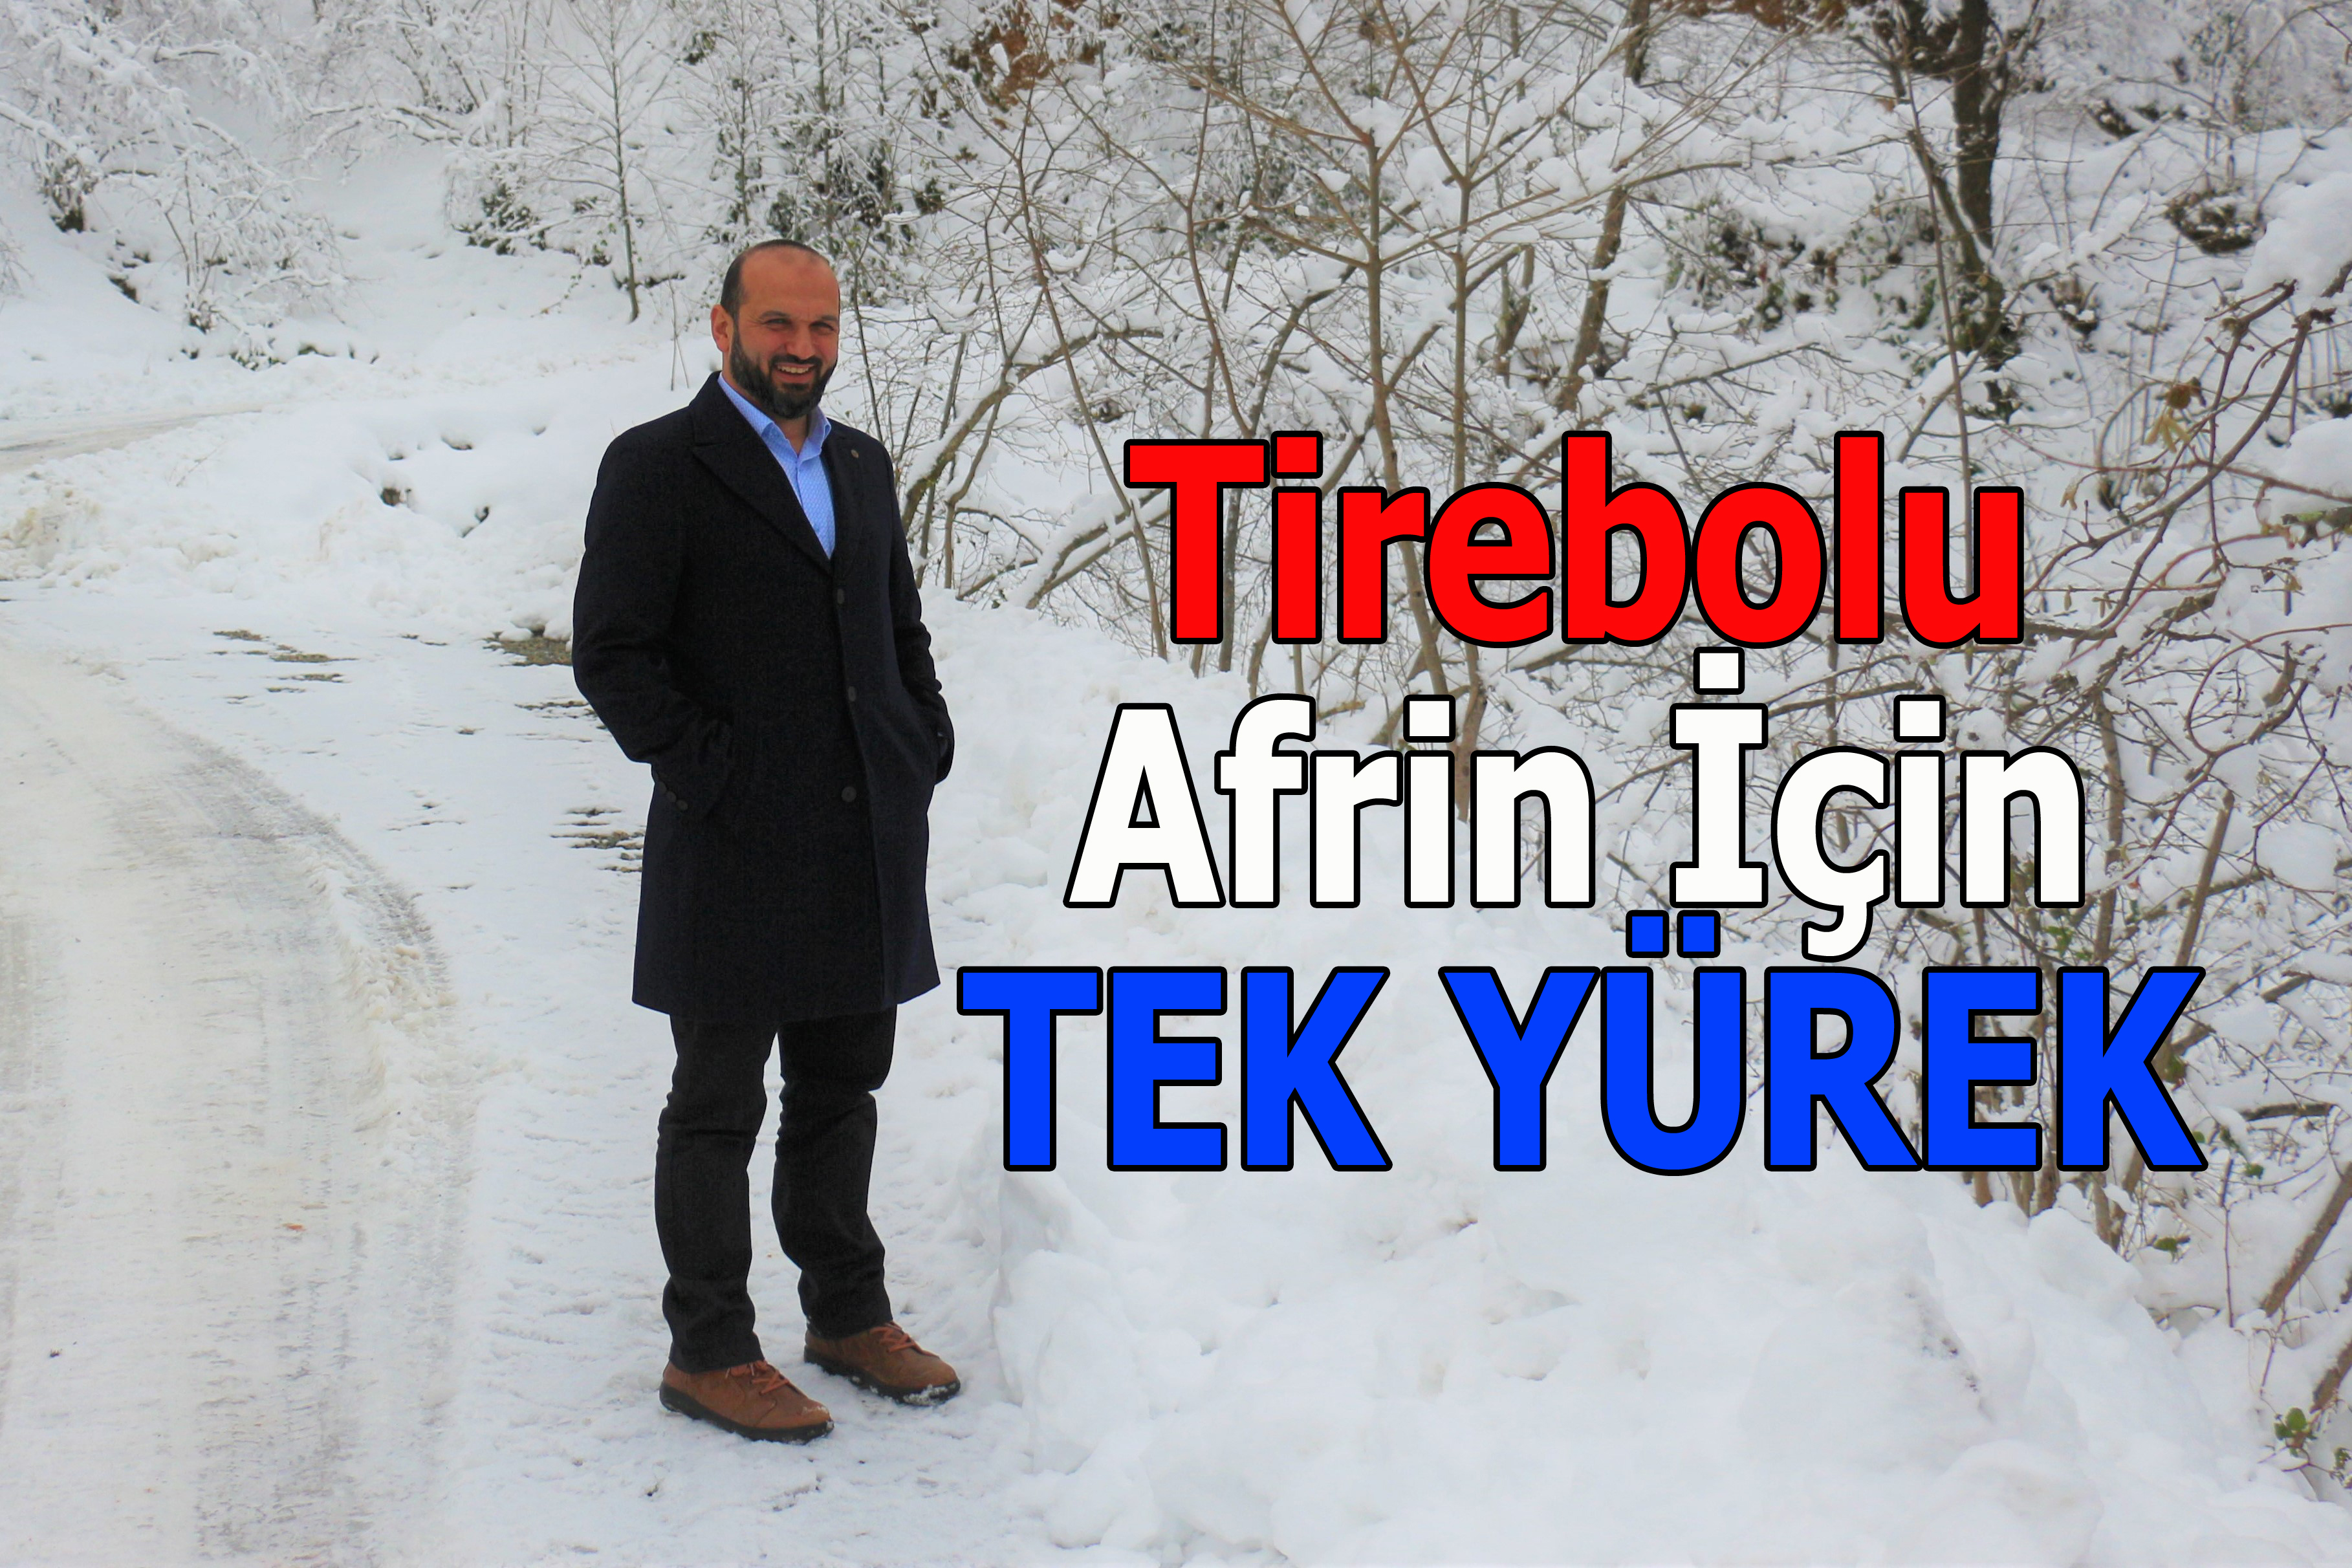 Tirebolu Afrin İçin Tek Yürek Oldu. Fındık Dalı Uzattı